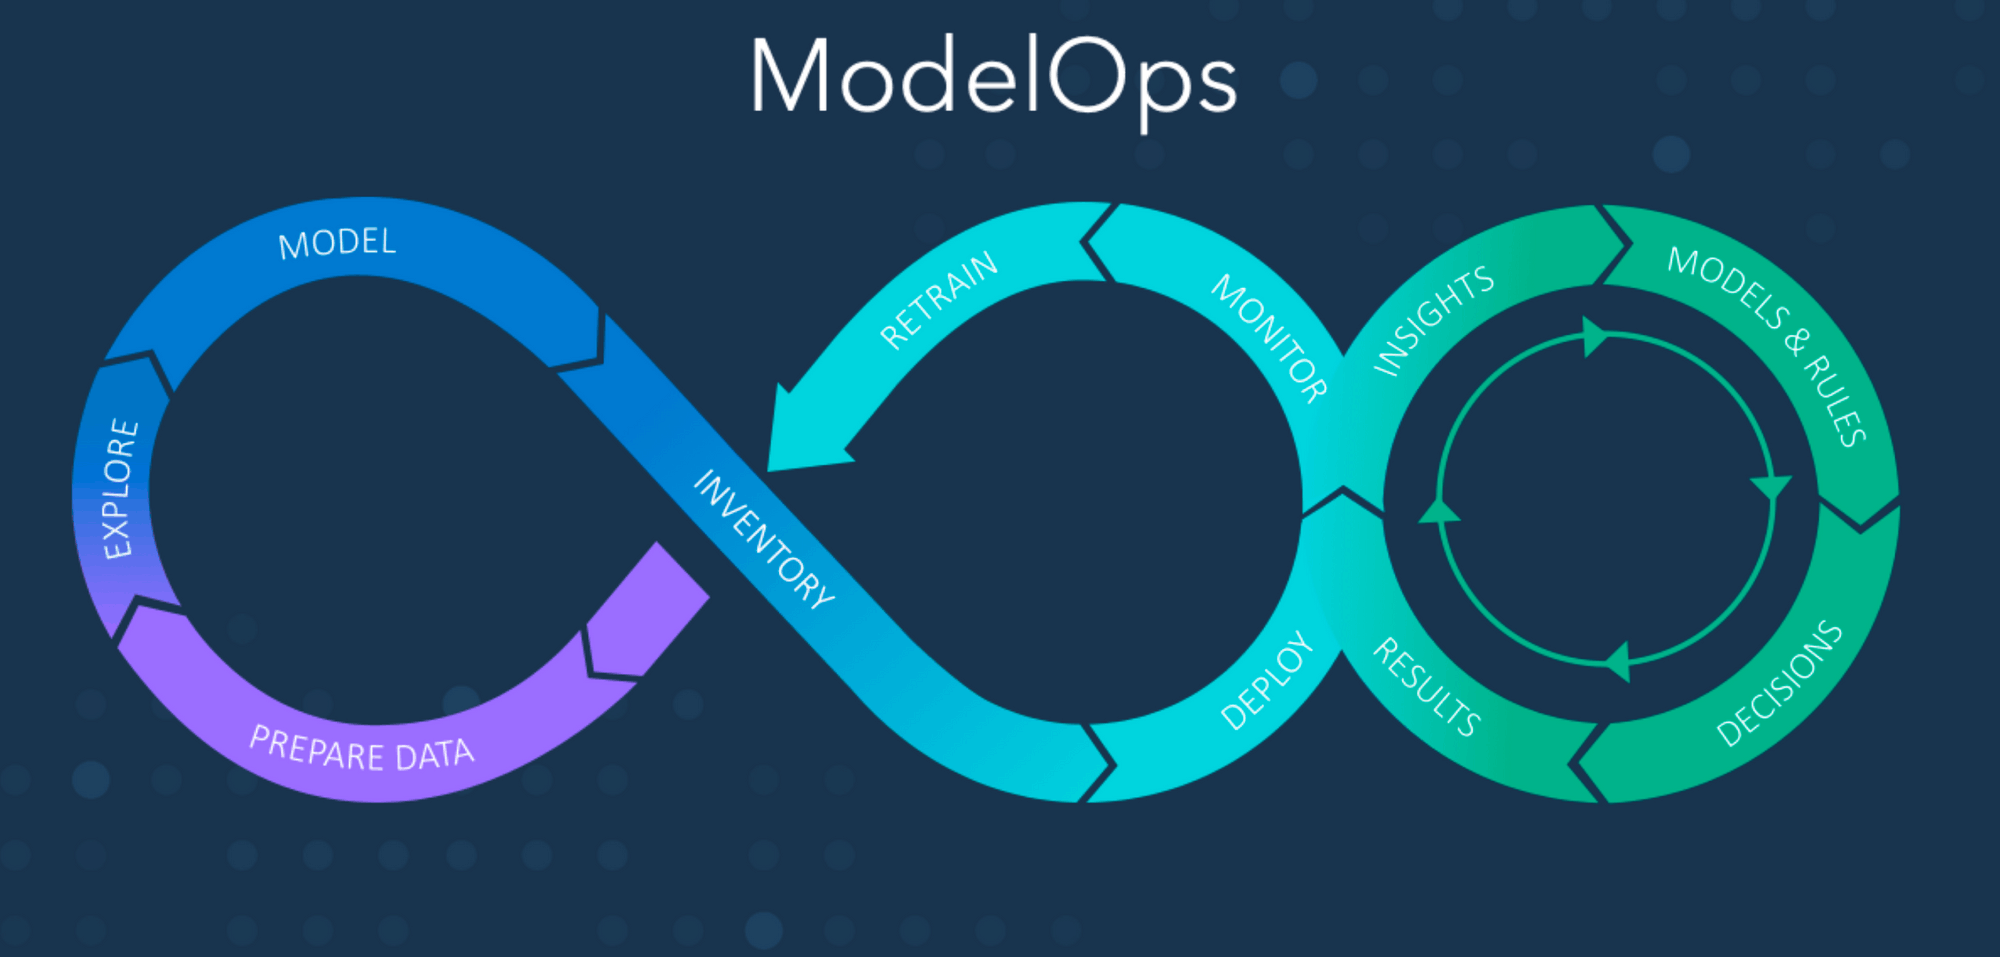 2021: build artificial intelligence with business results in mind: ModelOps